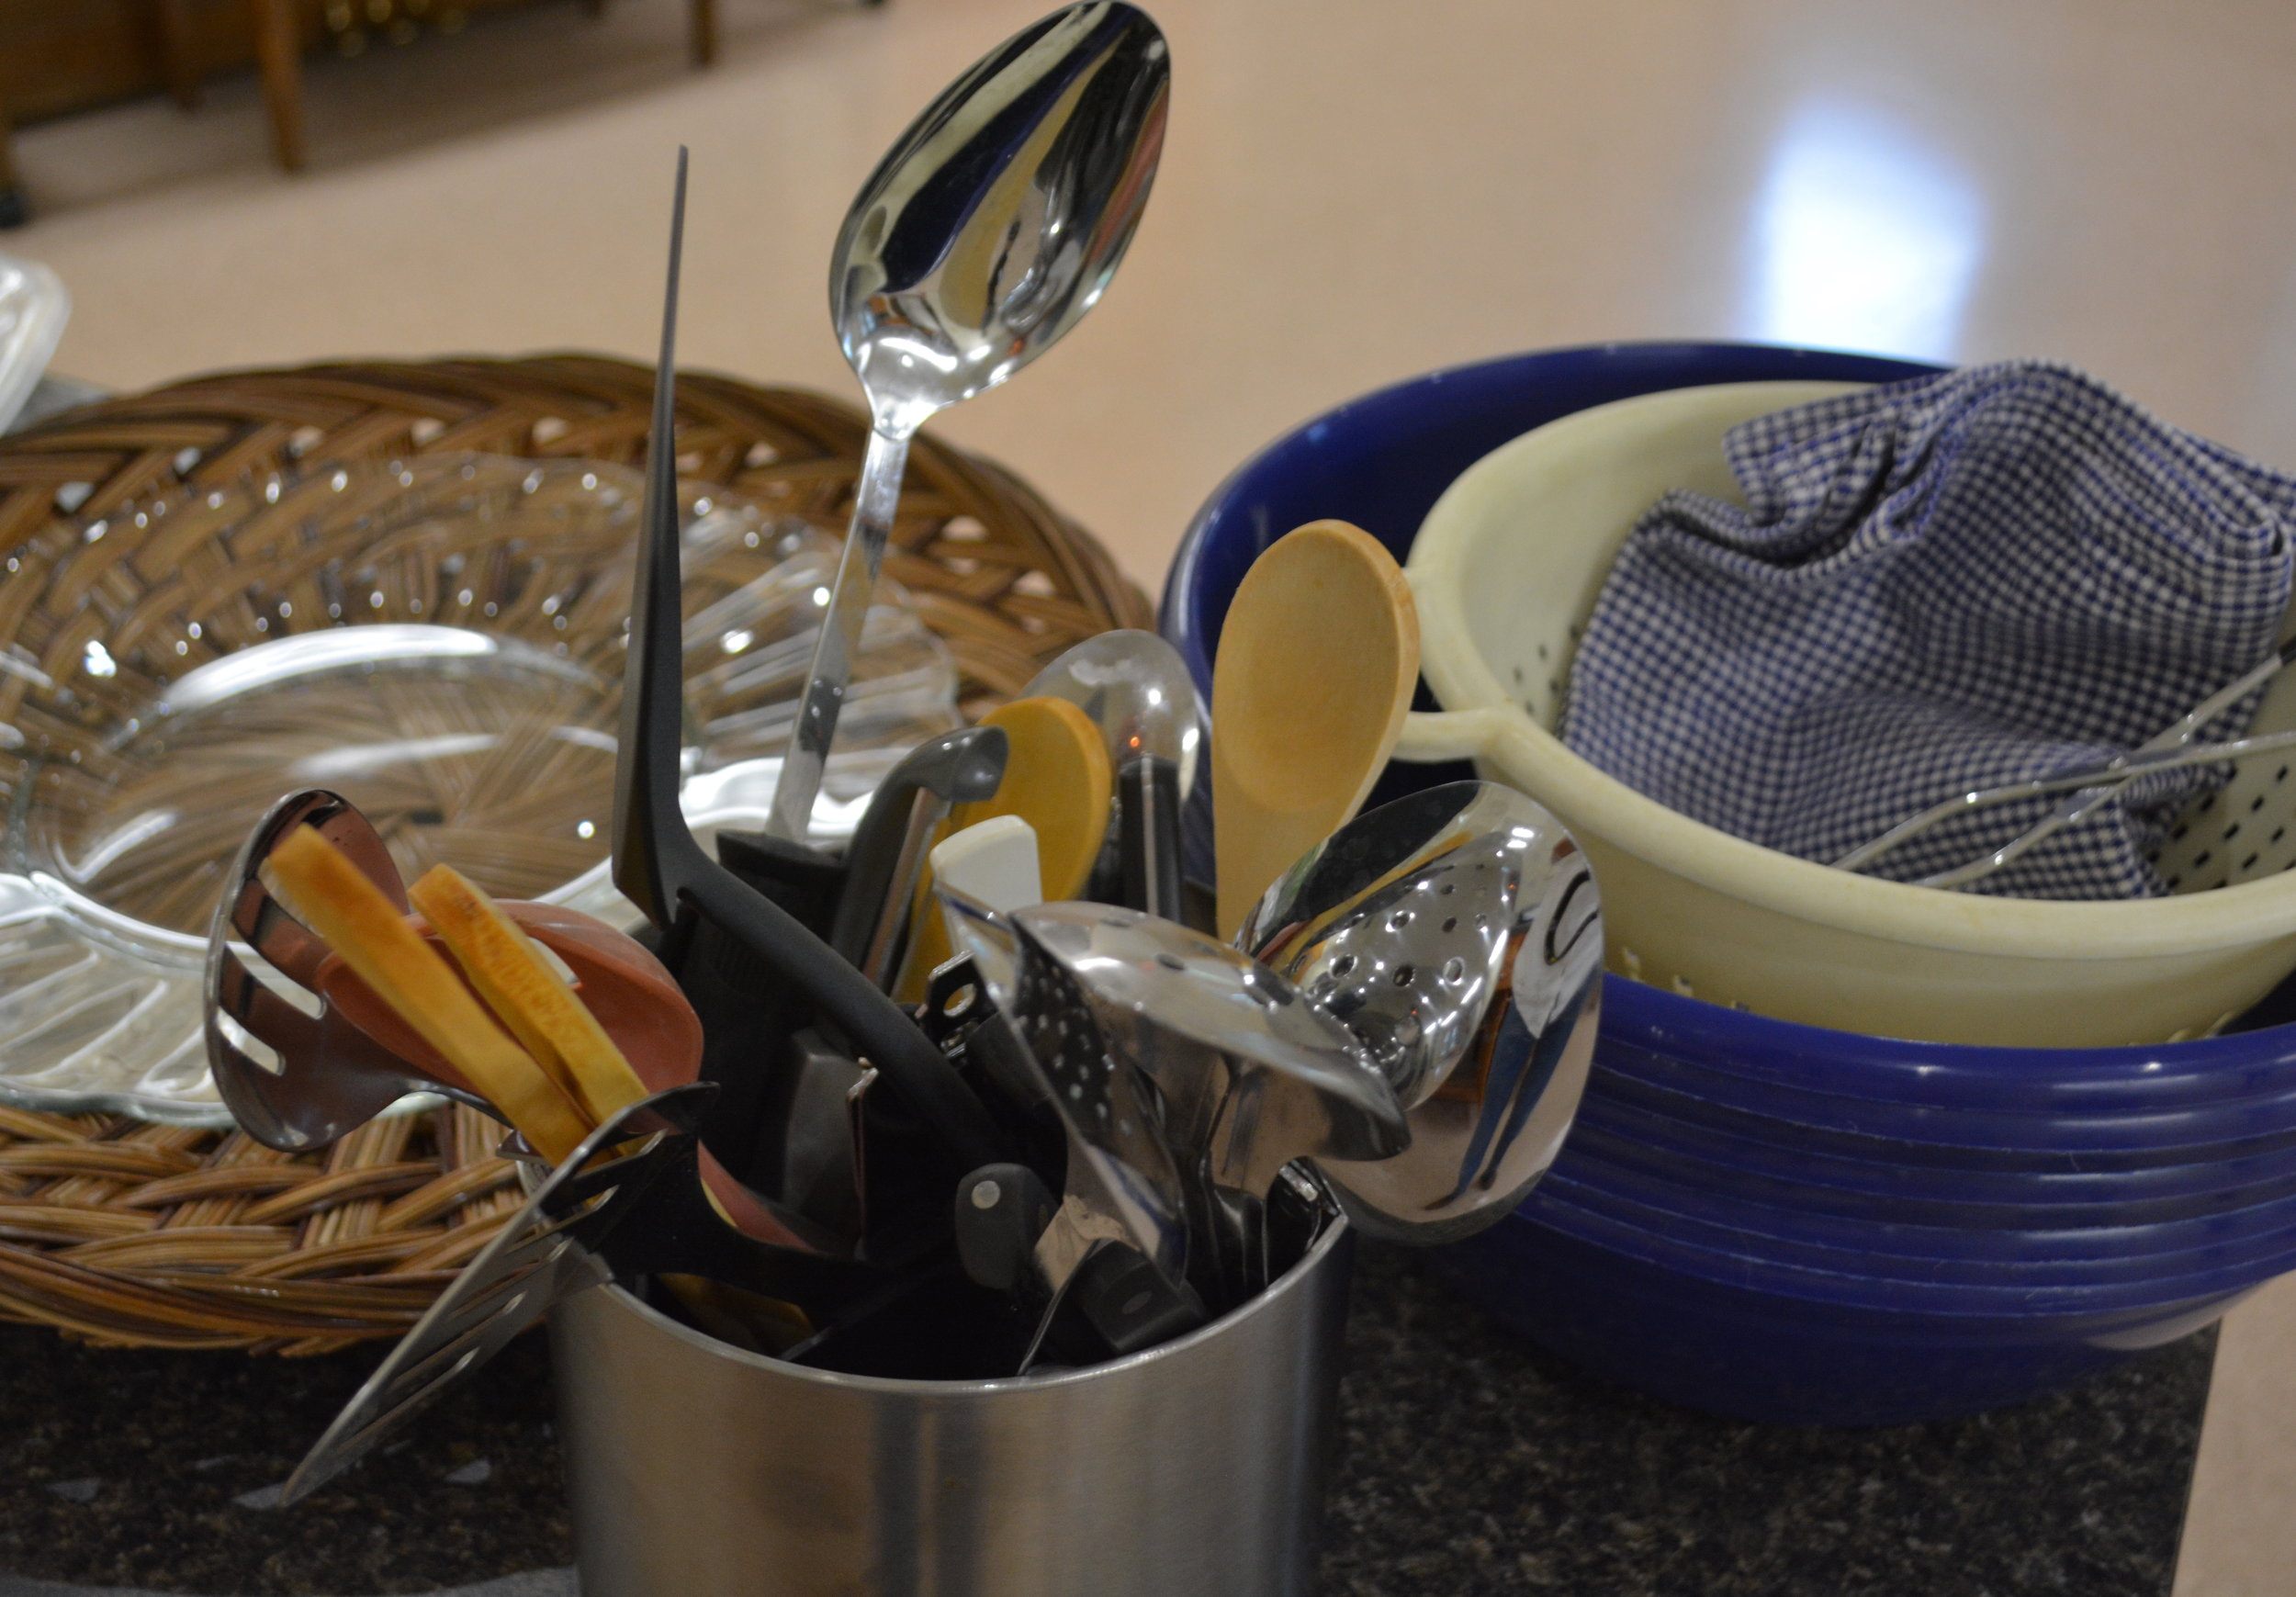 There are serving utensils, large plastic bows for chips, and trays.